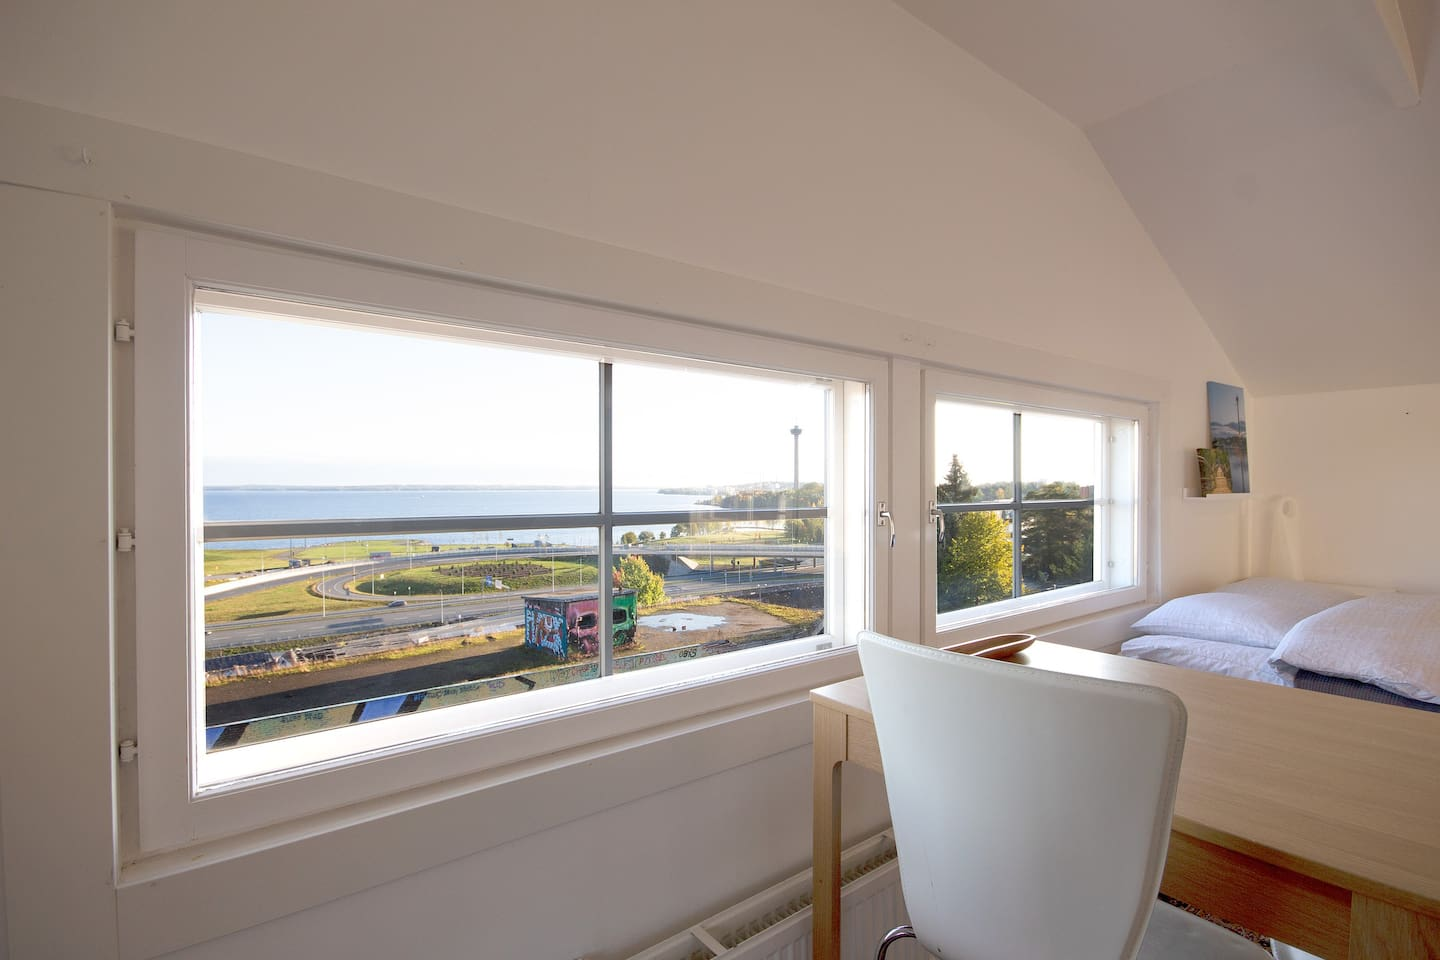 The view opens up from the sofa, dining table and bed